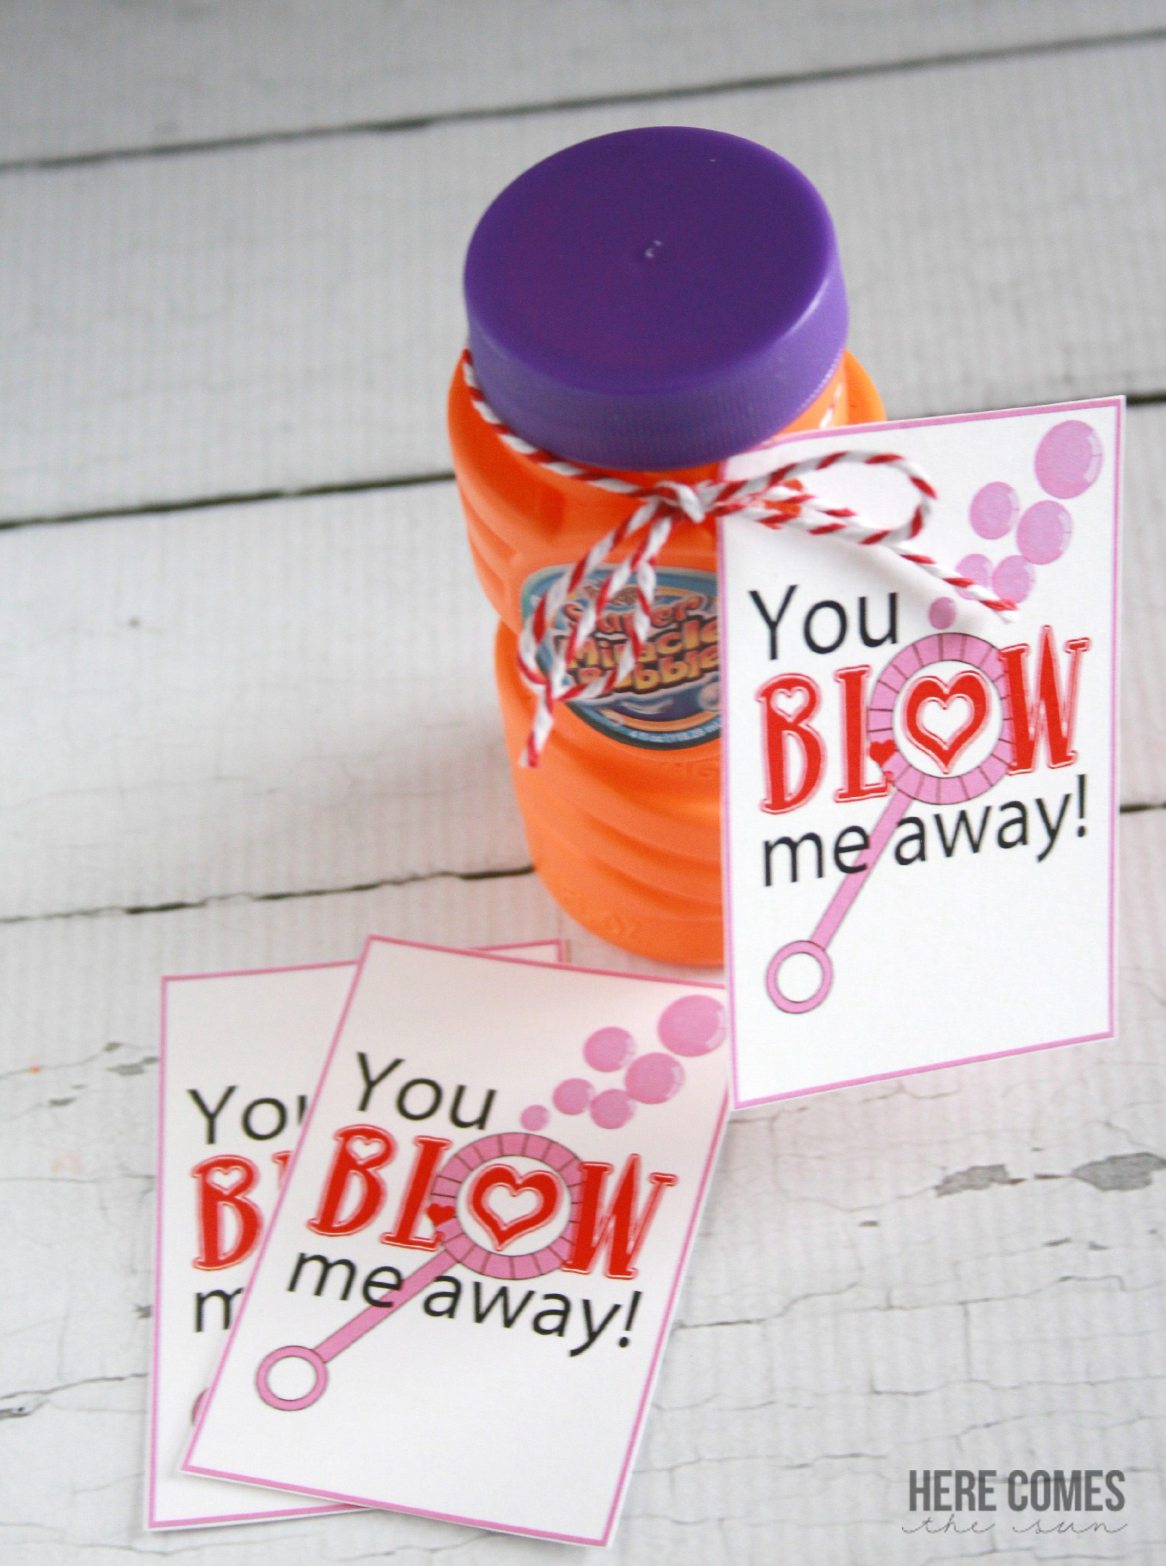 10 Non-Candy Last Minute but Adorable Free Printable DIY Valentine's // I Adore What I Love Blog // www.iadorewhatilove.com #iadorewhatilove